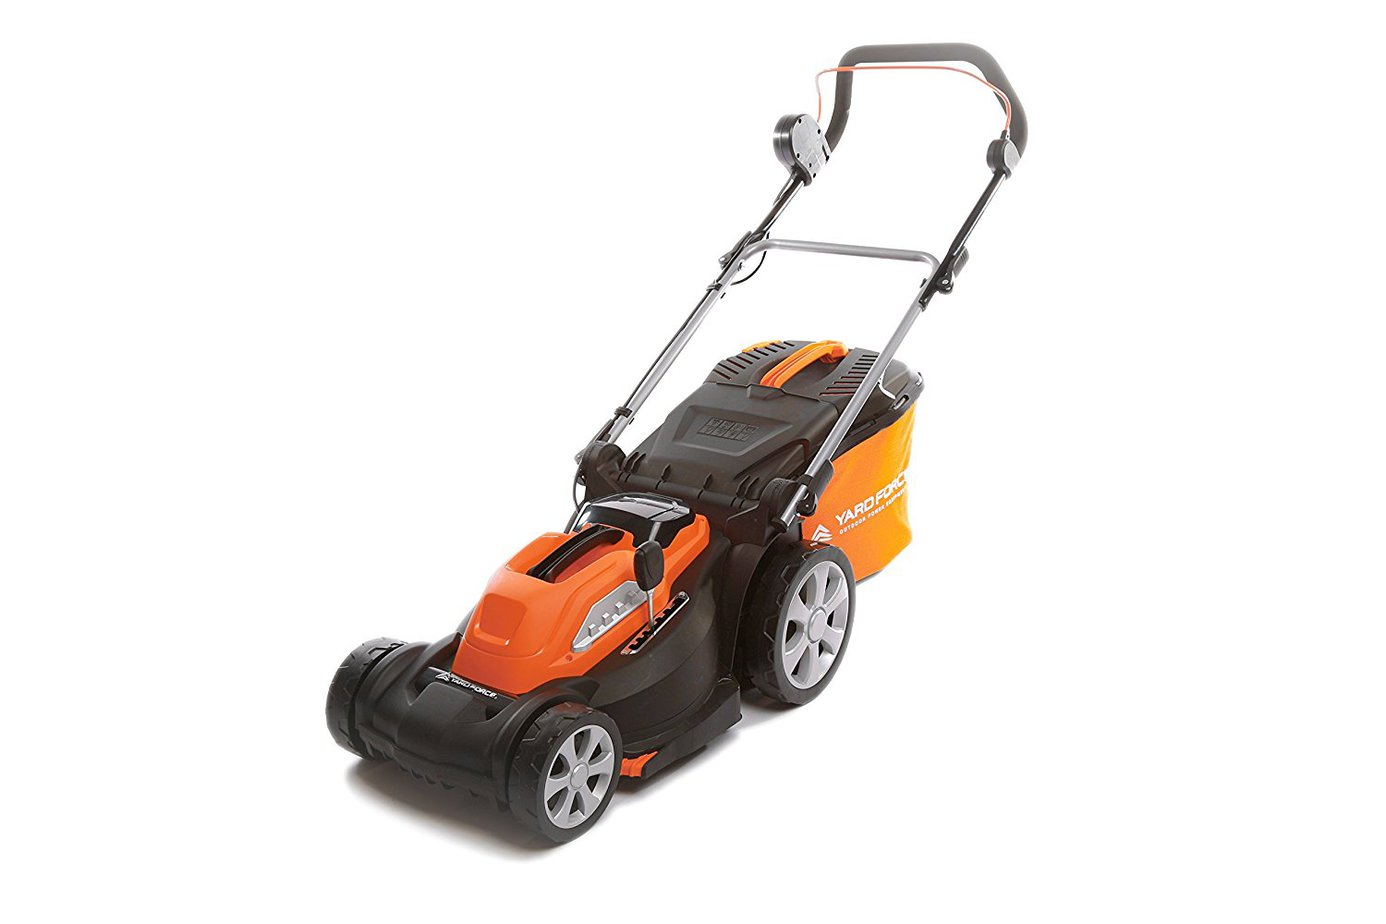 Yard Force 34cm Review 2020 Lm G34 Cordless Rotary